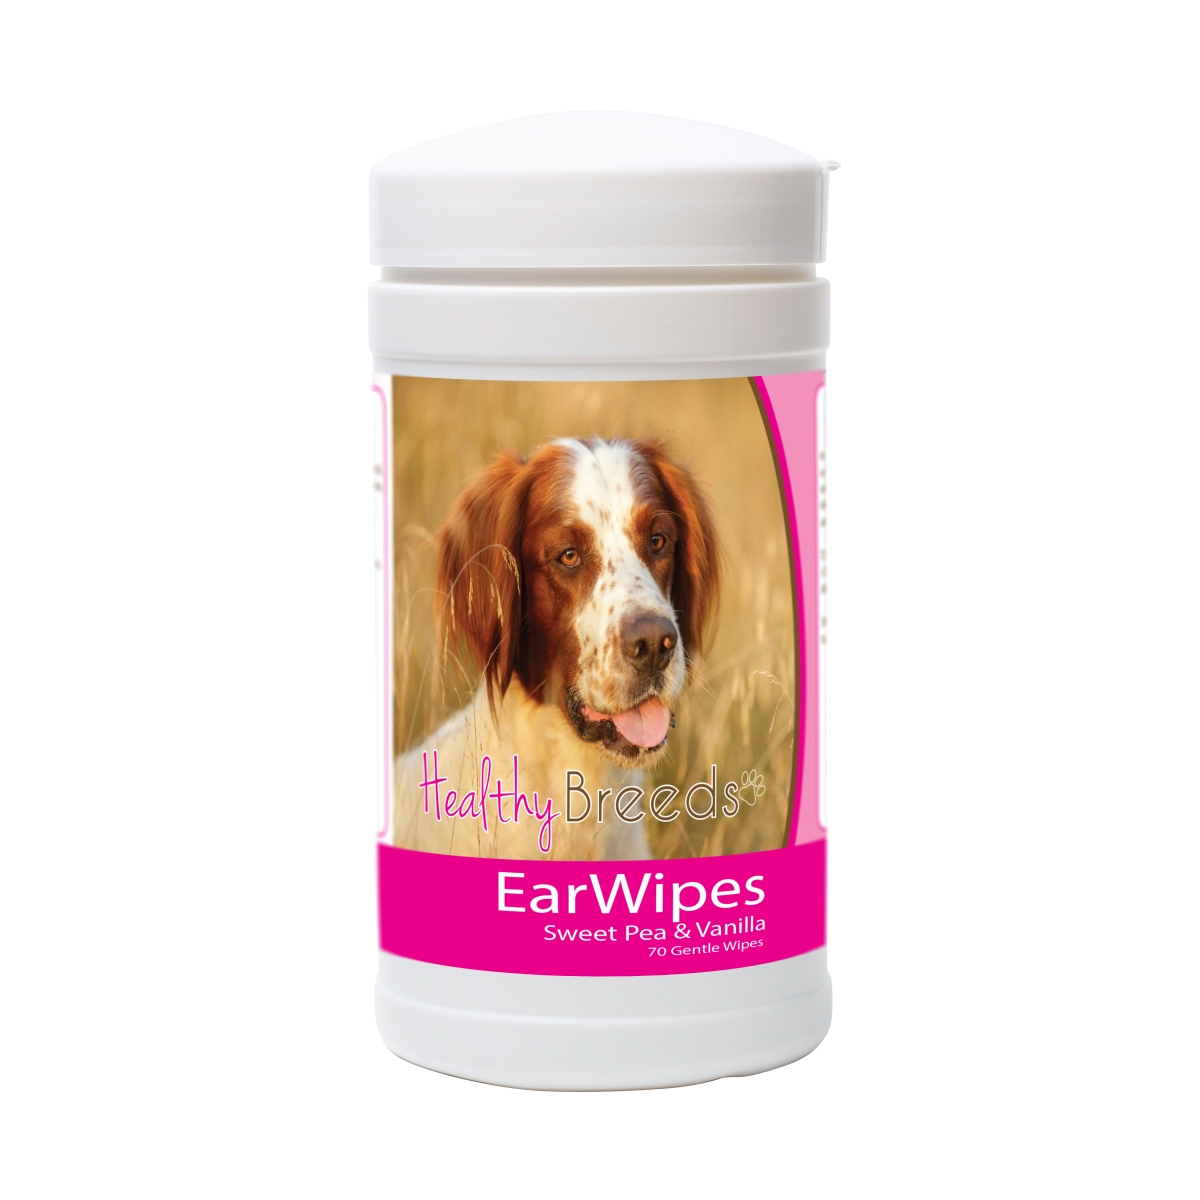 Healthy Breeds 840235175148 Irish Red & White Setter Ear Wipes - 70 Count